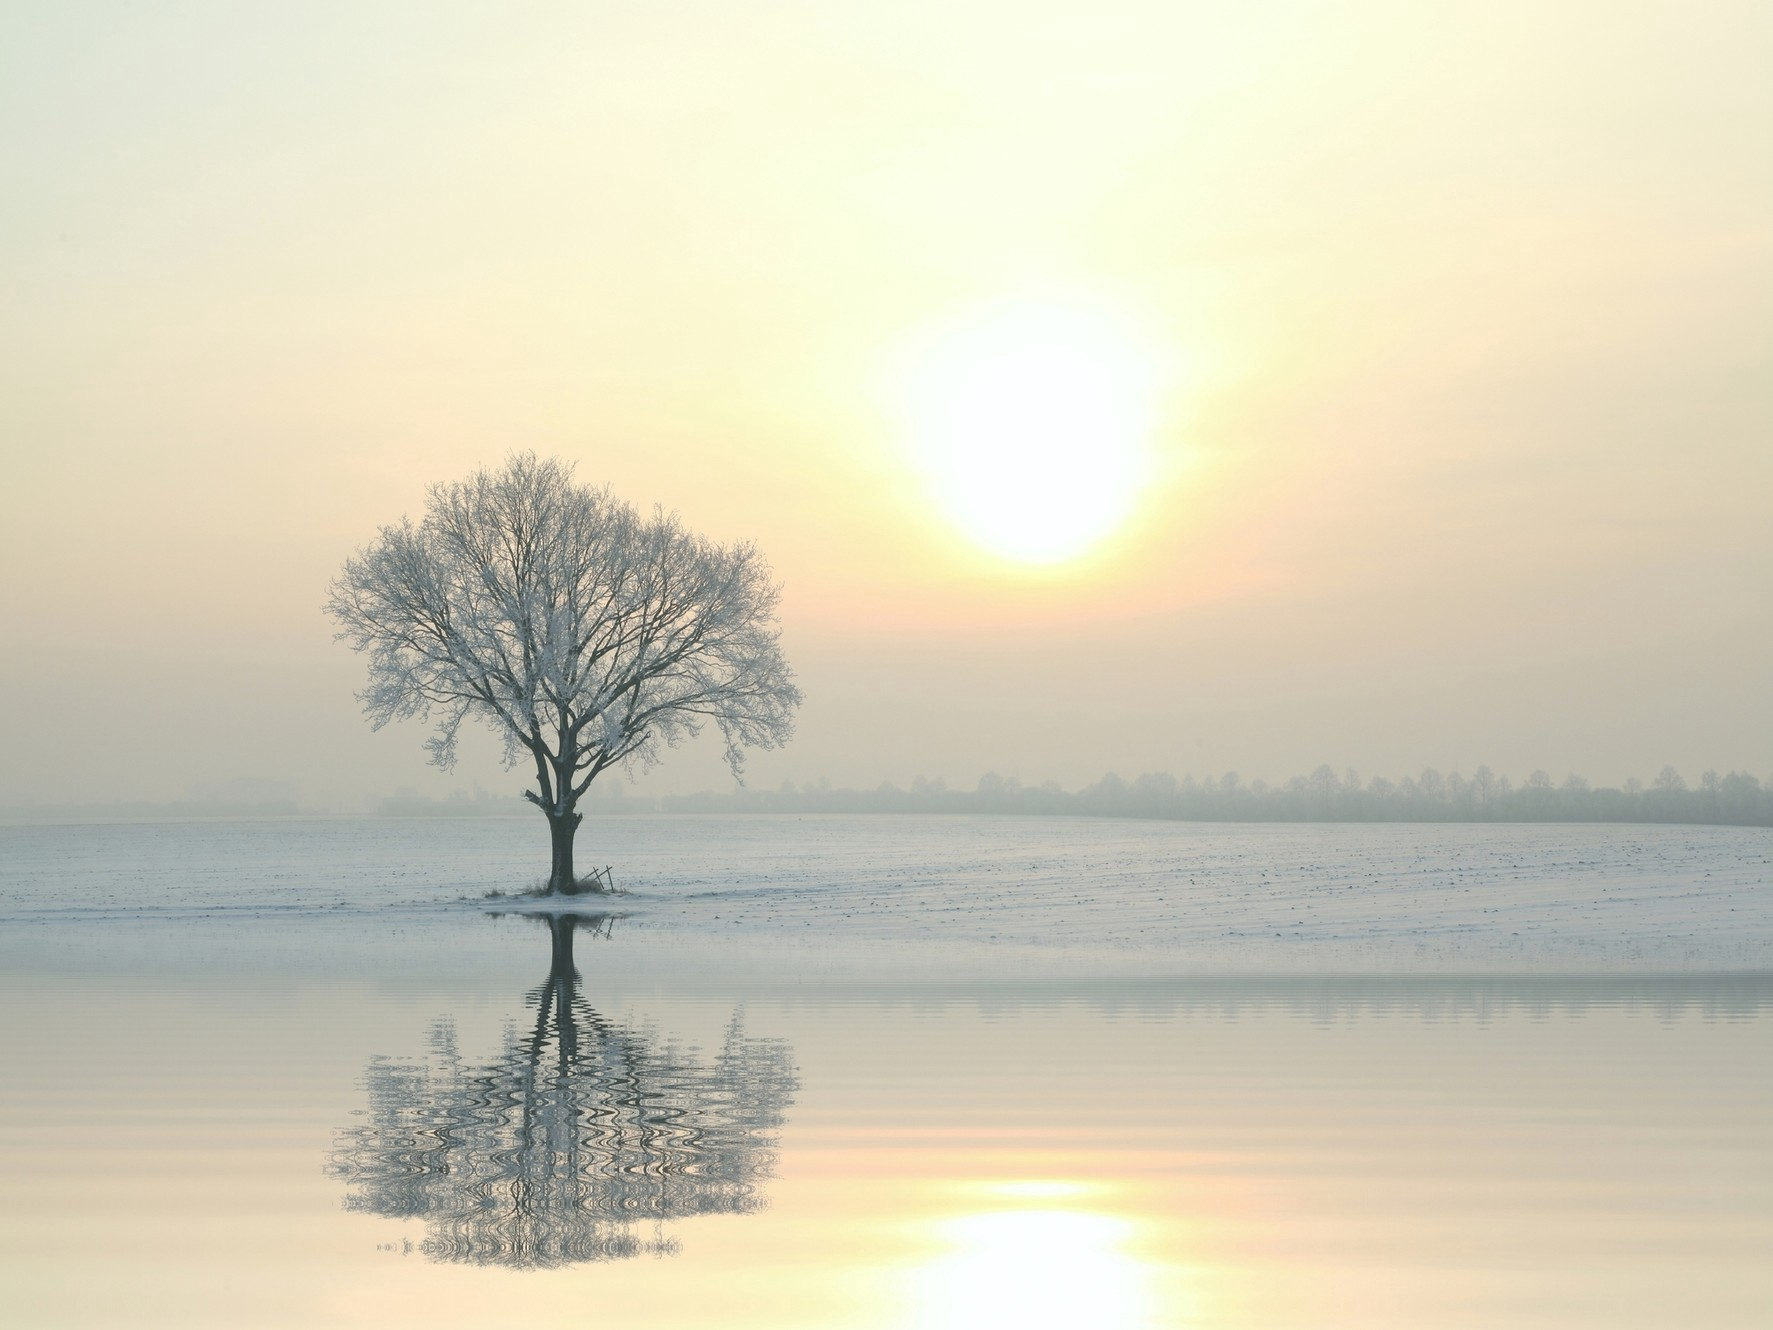 Tree in water with sun behind it